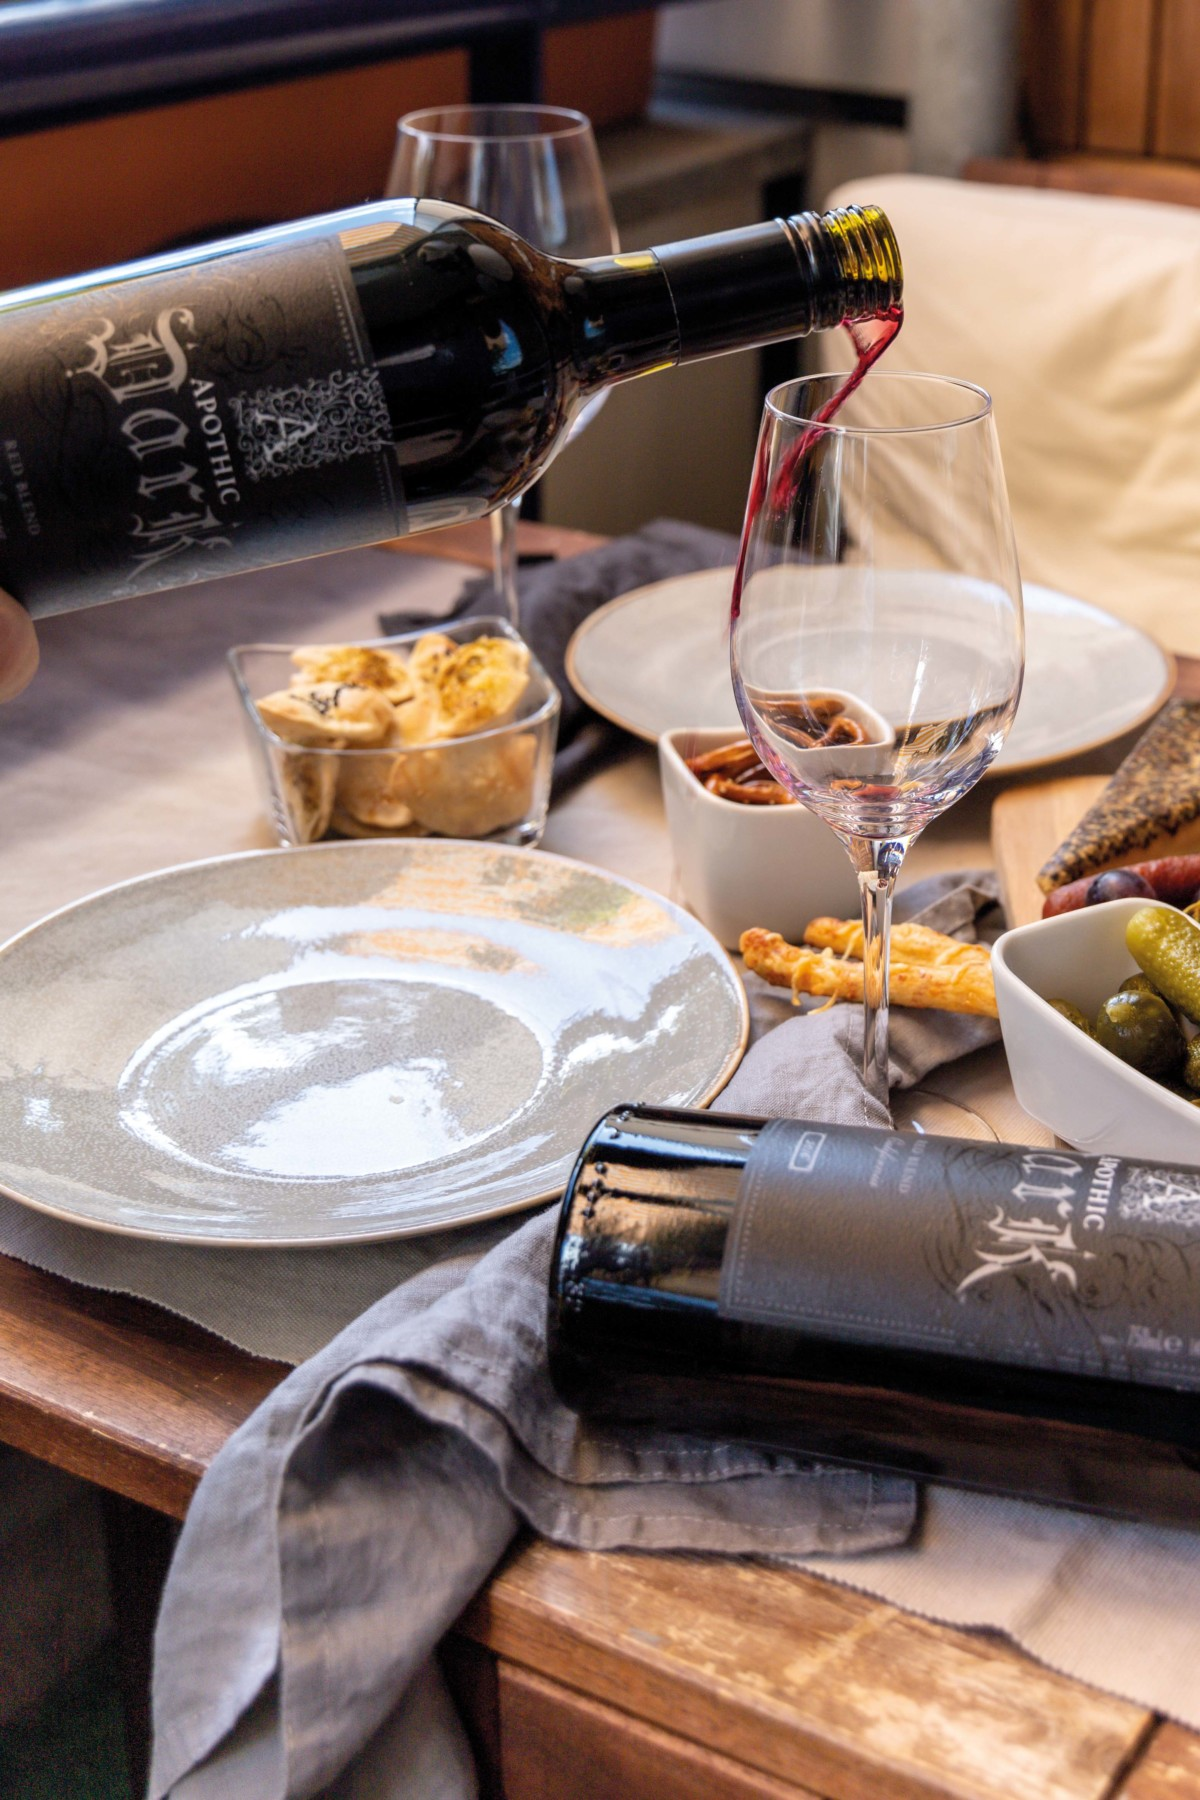 Knusperstangen, Cracker, Freunde und ein Apothic Dark Wein // Crunchy Sticks, Cracker and an apothic red wine by https://babyrockmyday.com/knusperstangen/